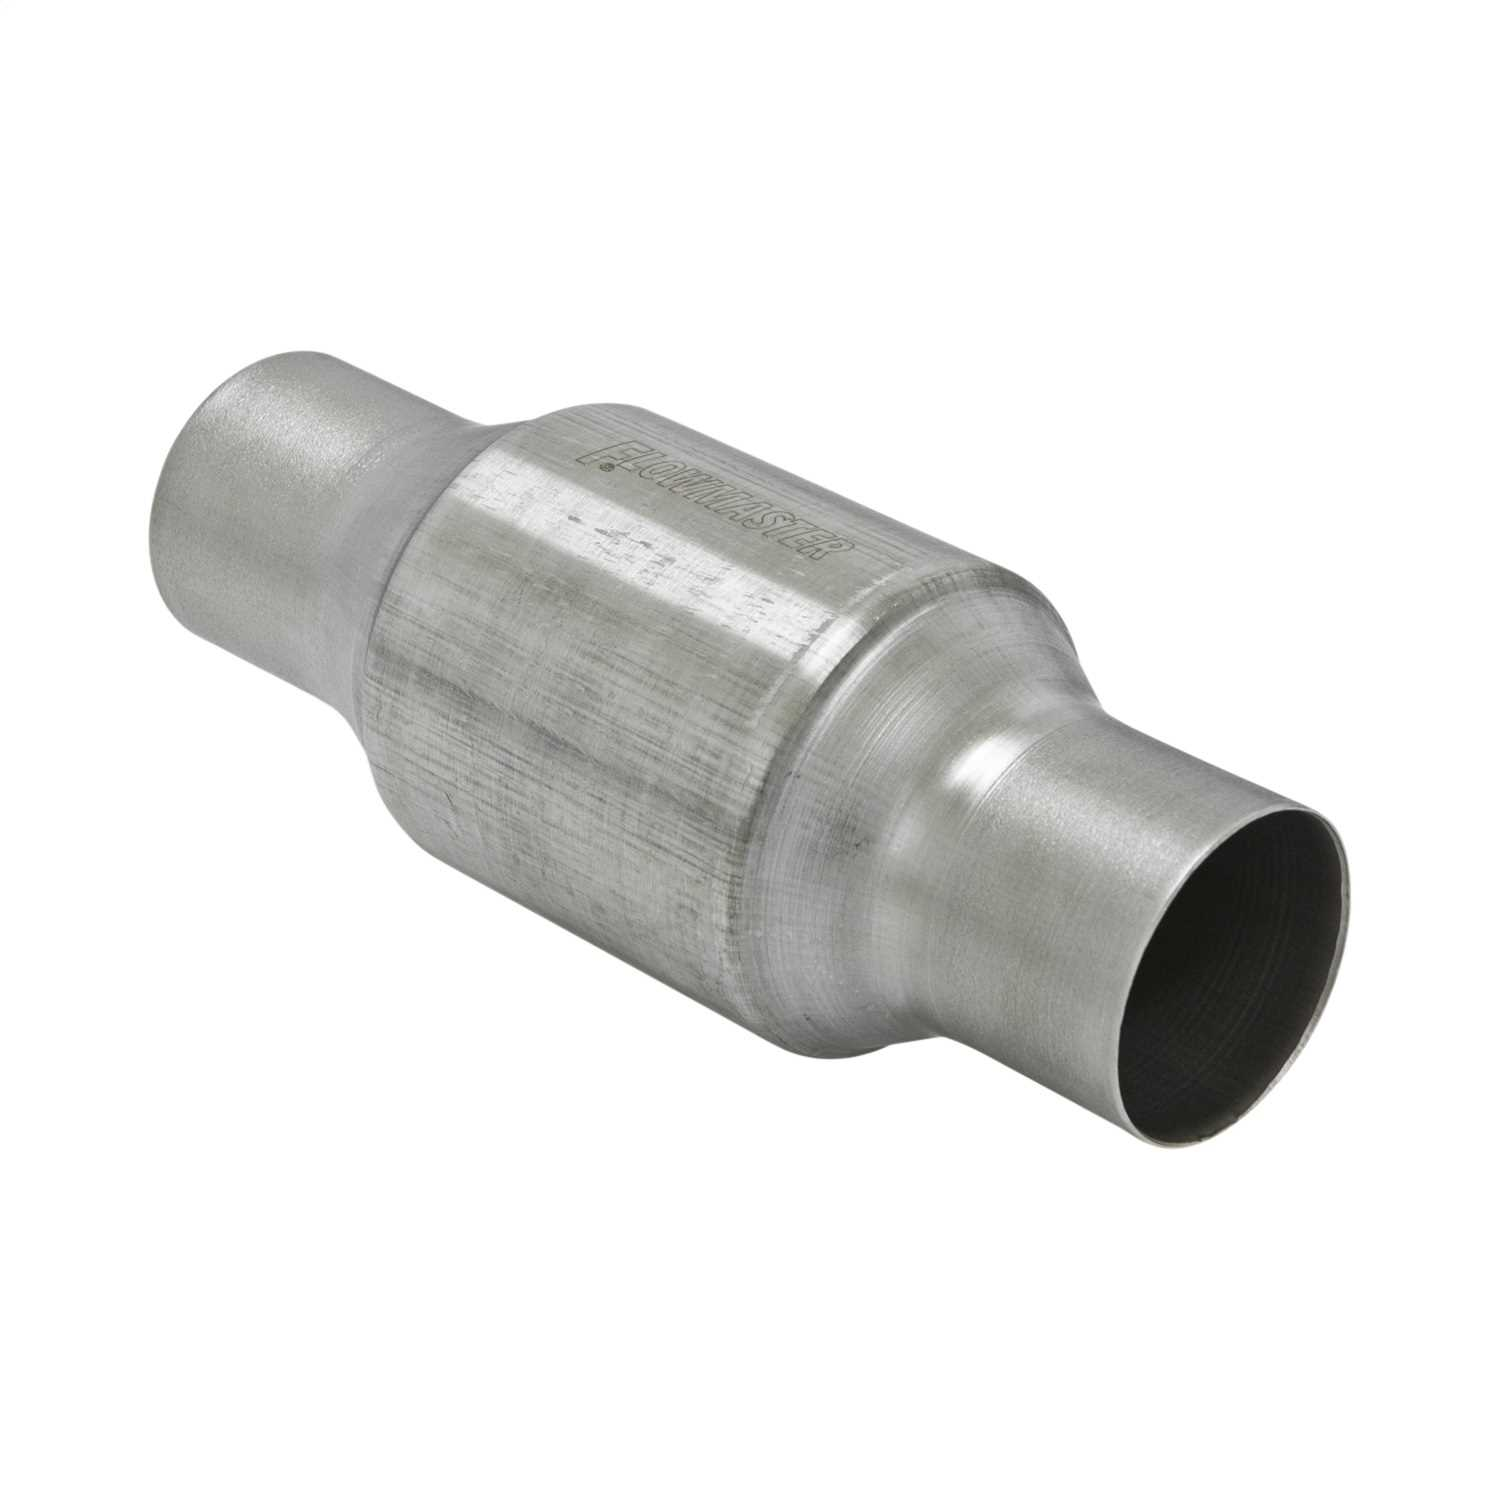 2830125 Flowmaster 49 State Catalytic Converters Universal Catalytic Converter